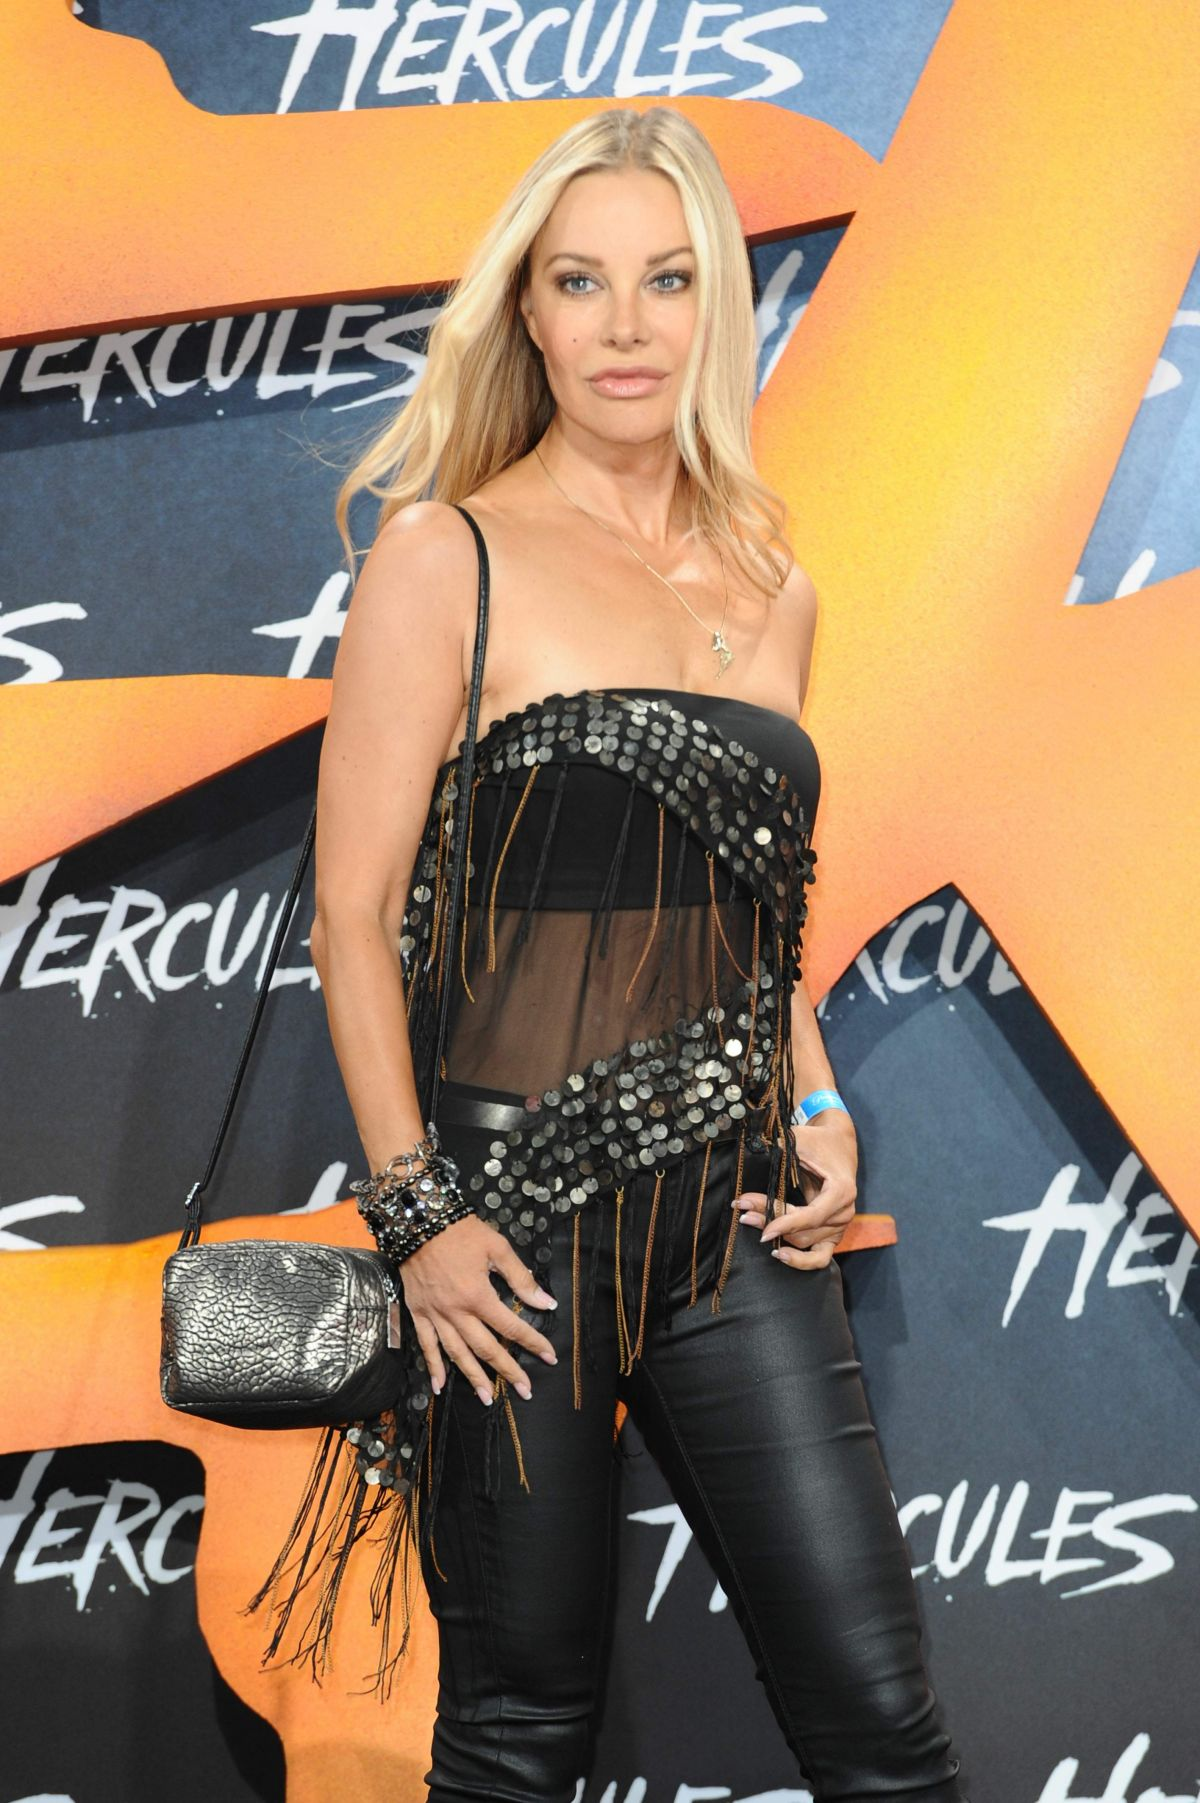 XENIA SEEBERG at Hercules Premiere in Berlin